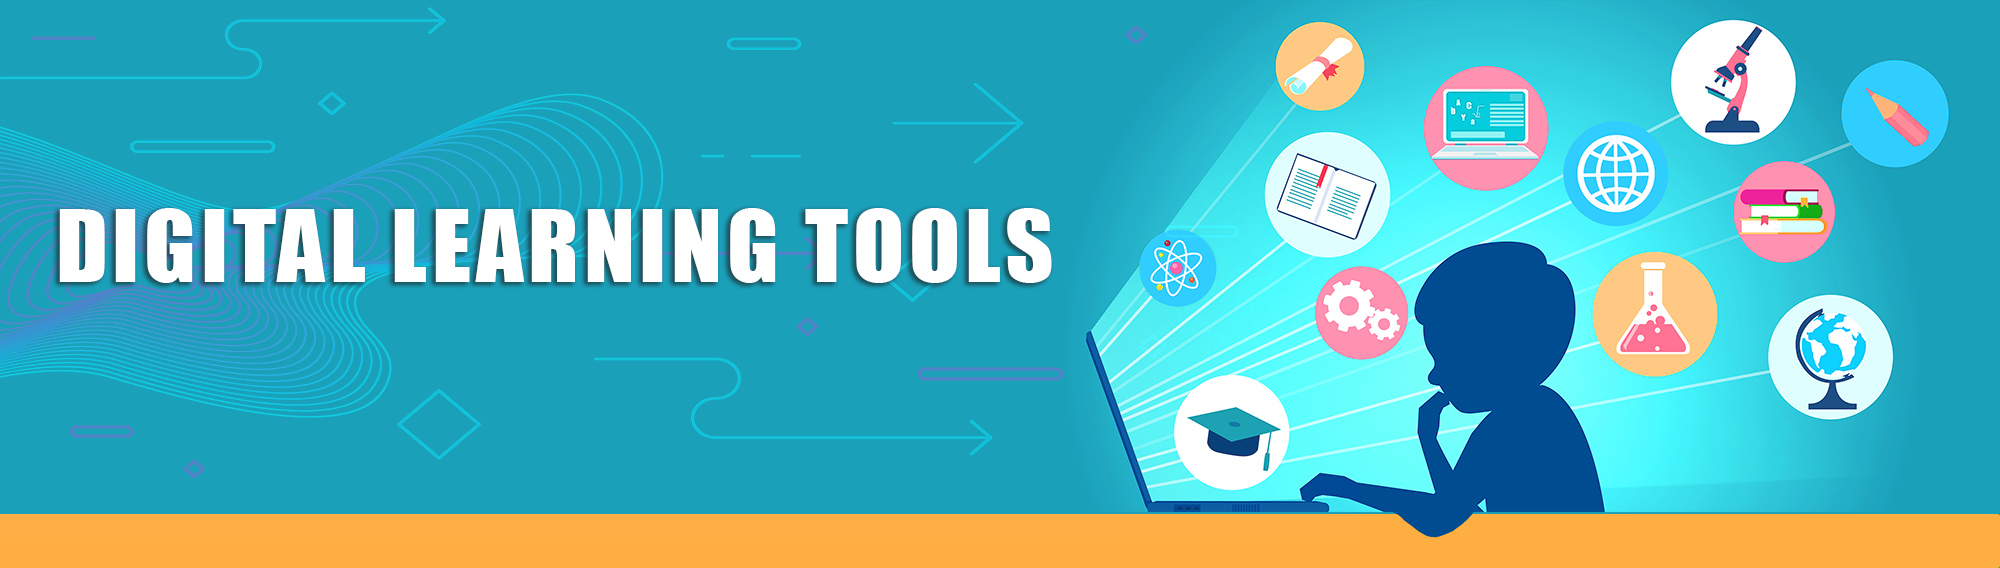 Digital Learning Tools Banner